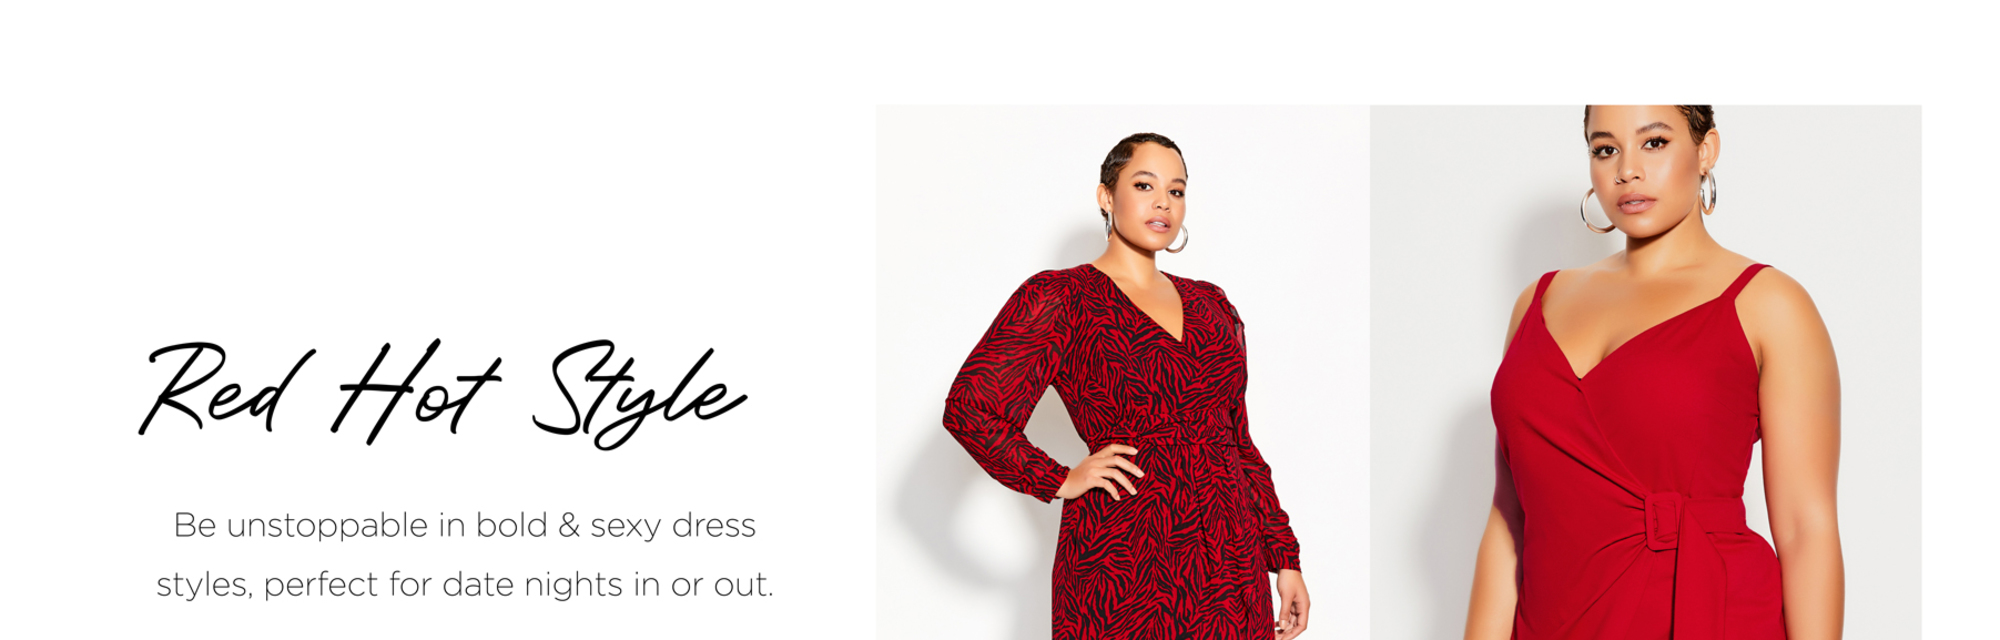 Red Hot Style - Shop Date Night Dresses